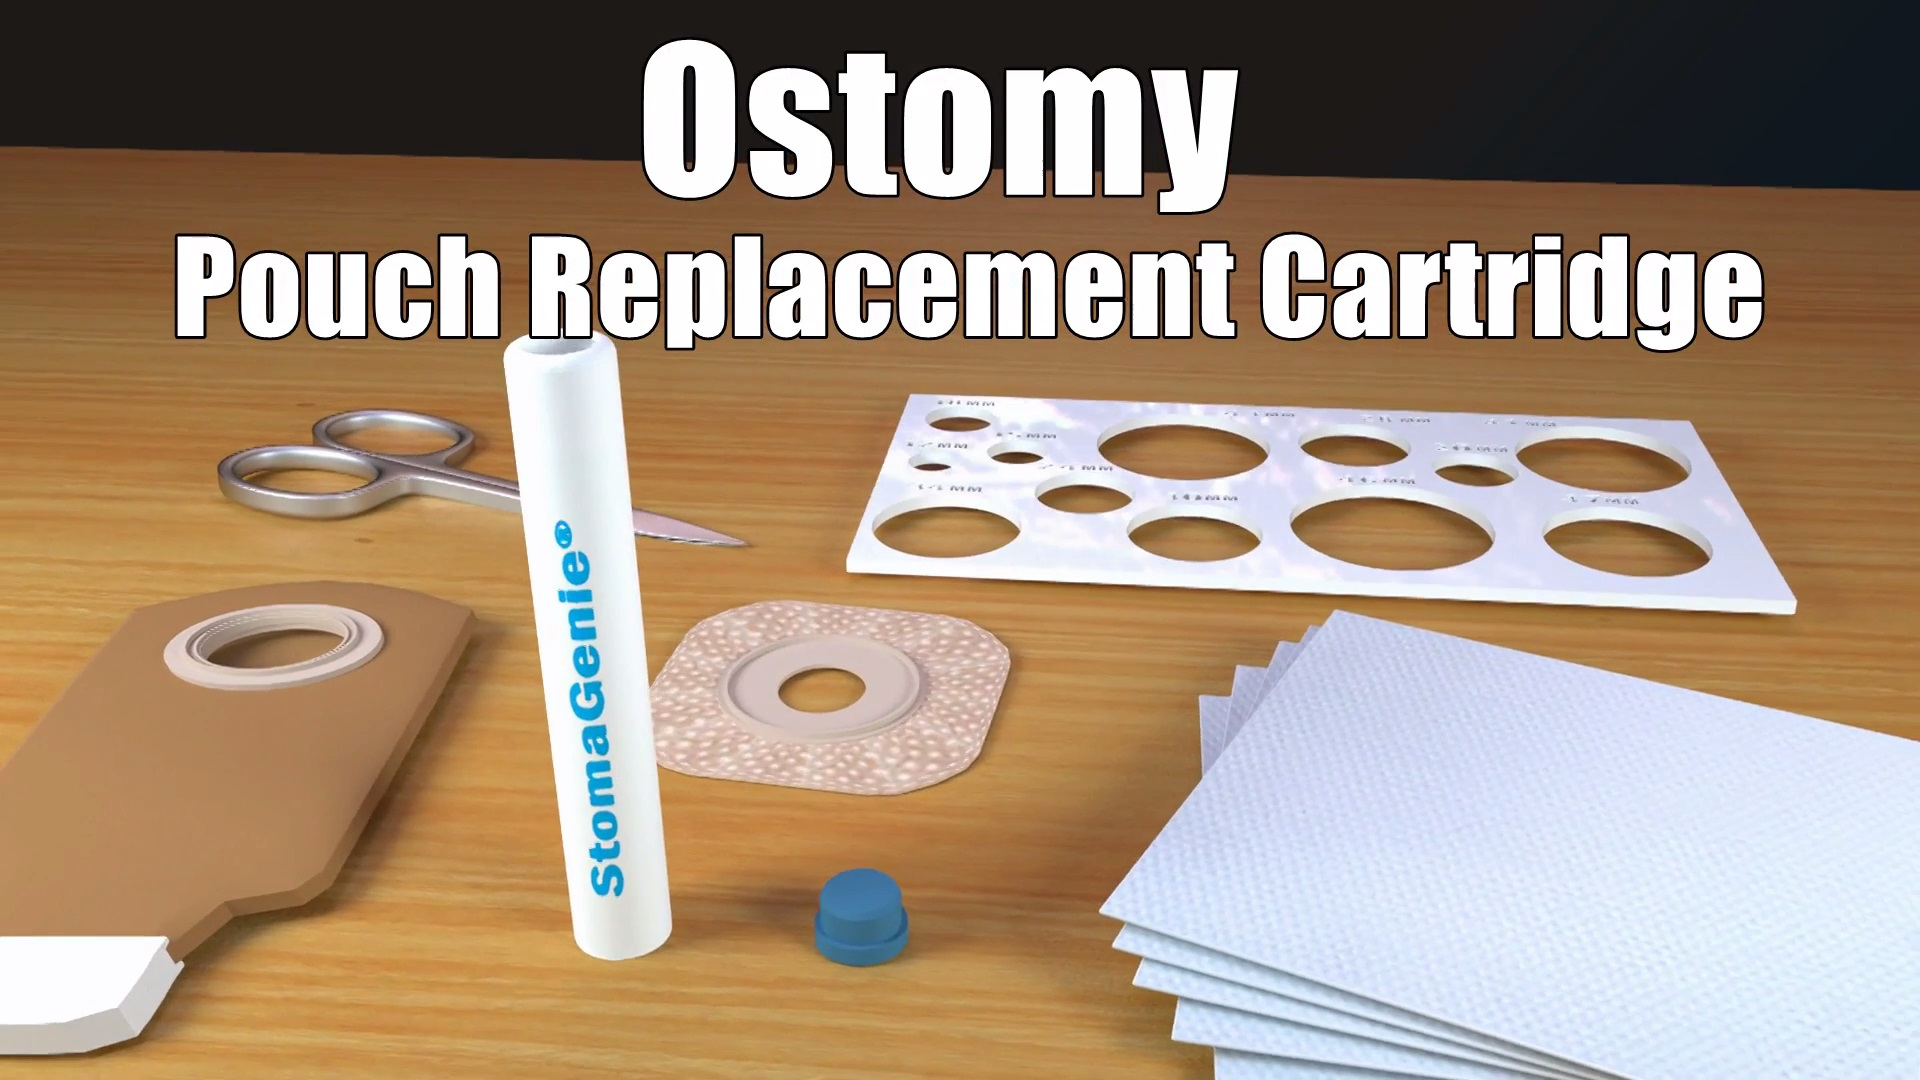 Ostomy Pouch Replacement Cartridge